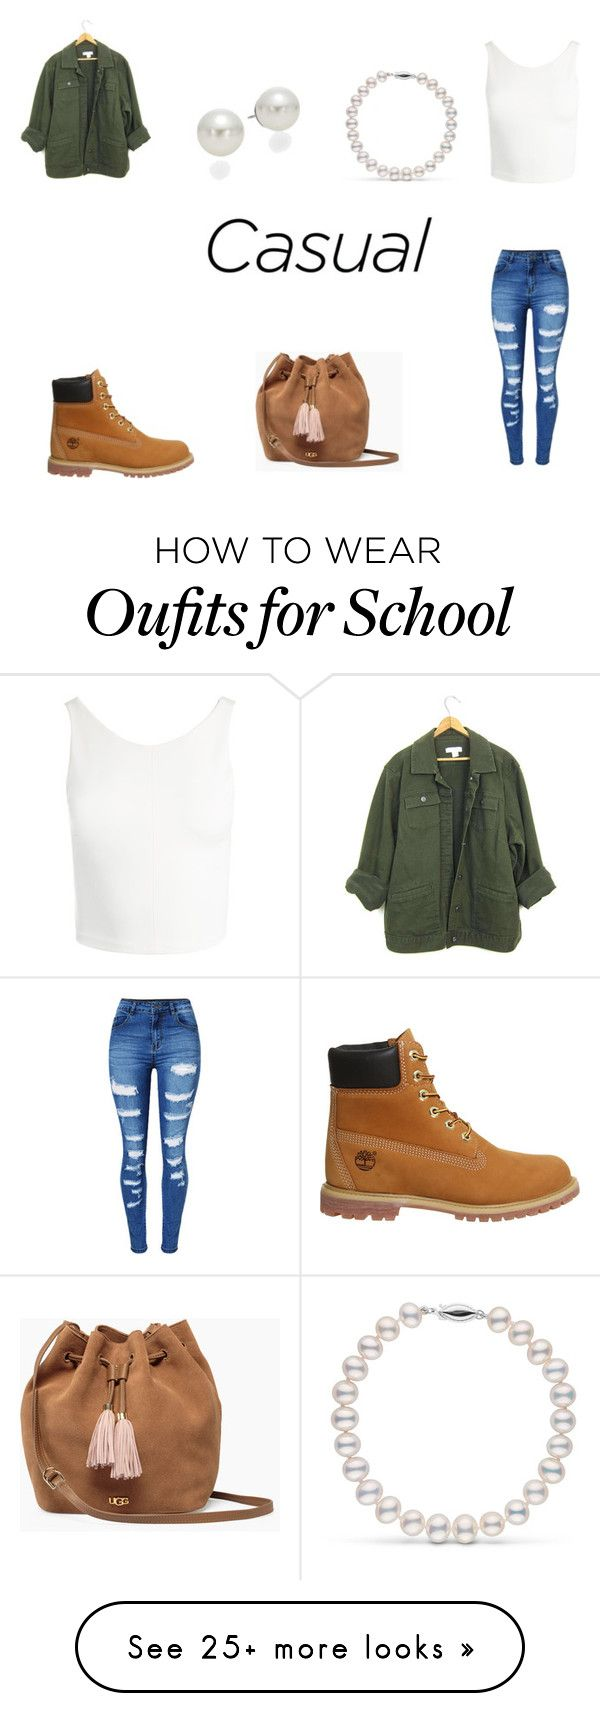 """Something  Iwould wear to school!"" by queenb-676 on Polyvore featuring Sans Souci, Timberland, WithChic, UGG and AK Anne Klein"